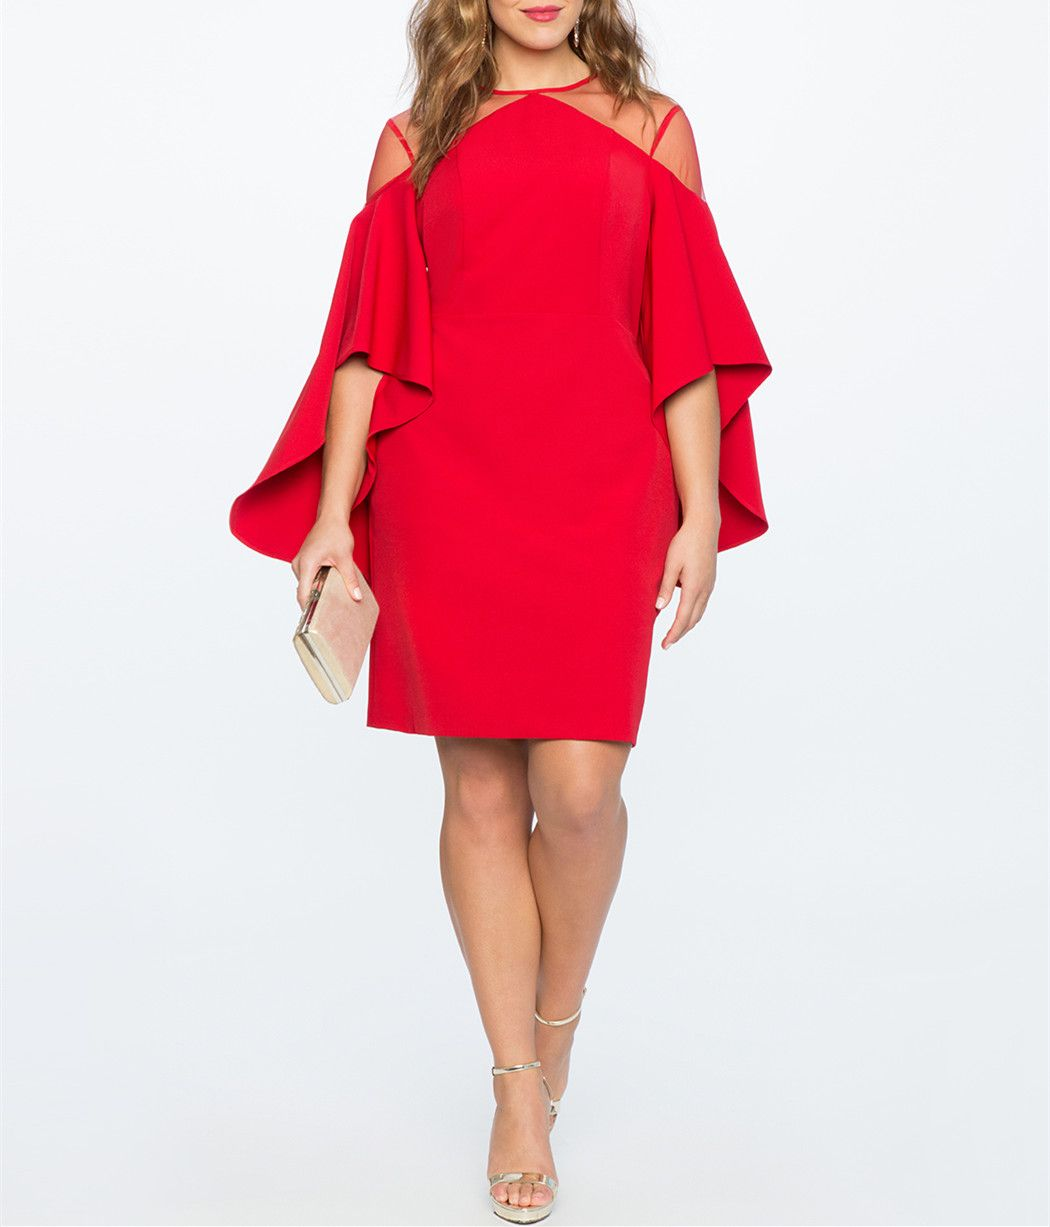 Elegant red plus size party dresshalf sleeves homecoming dresssee